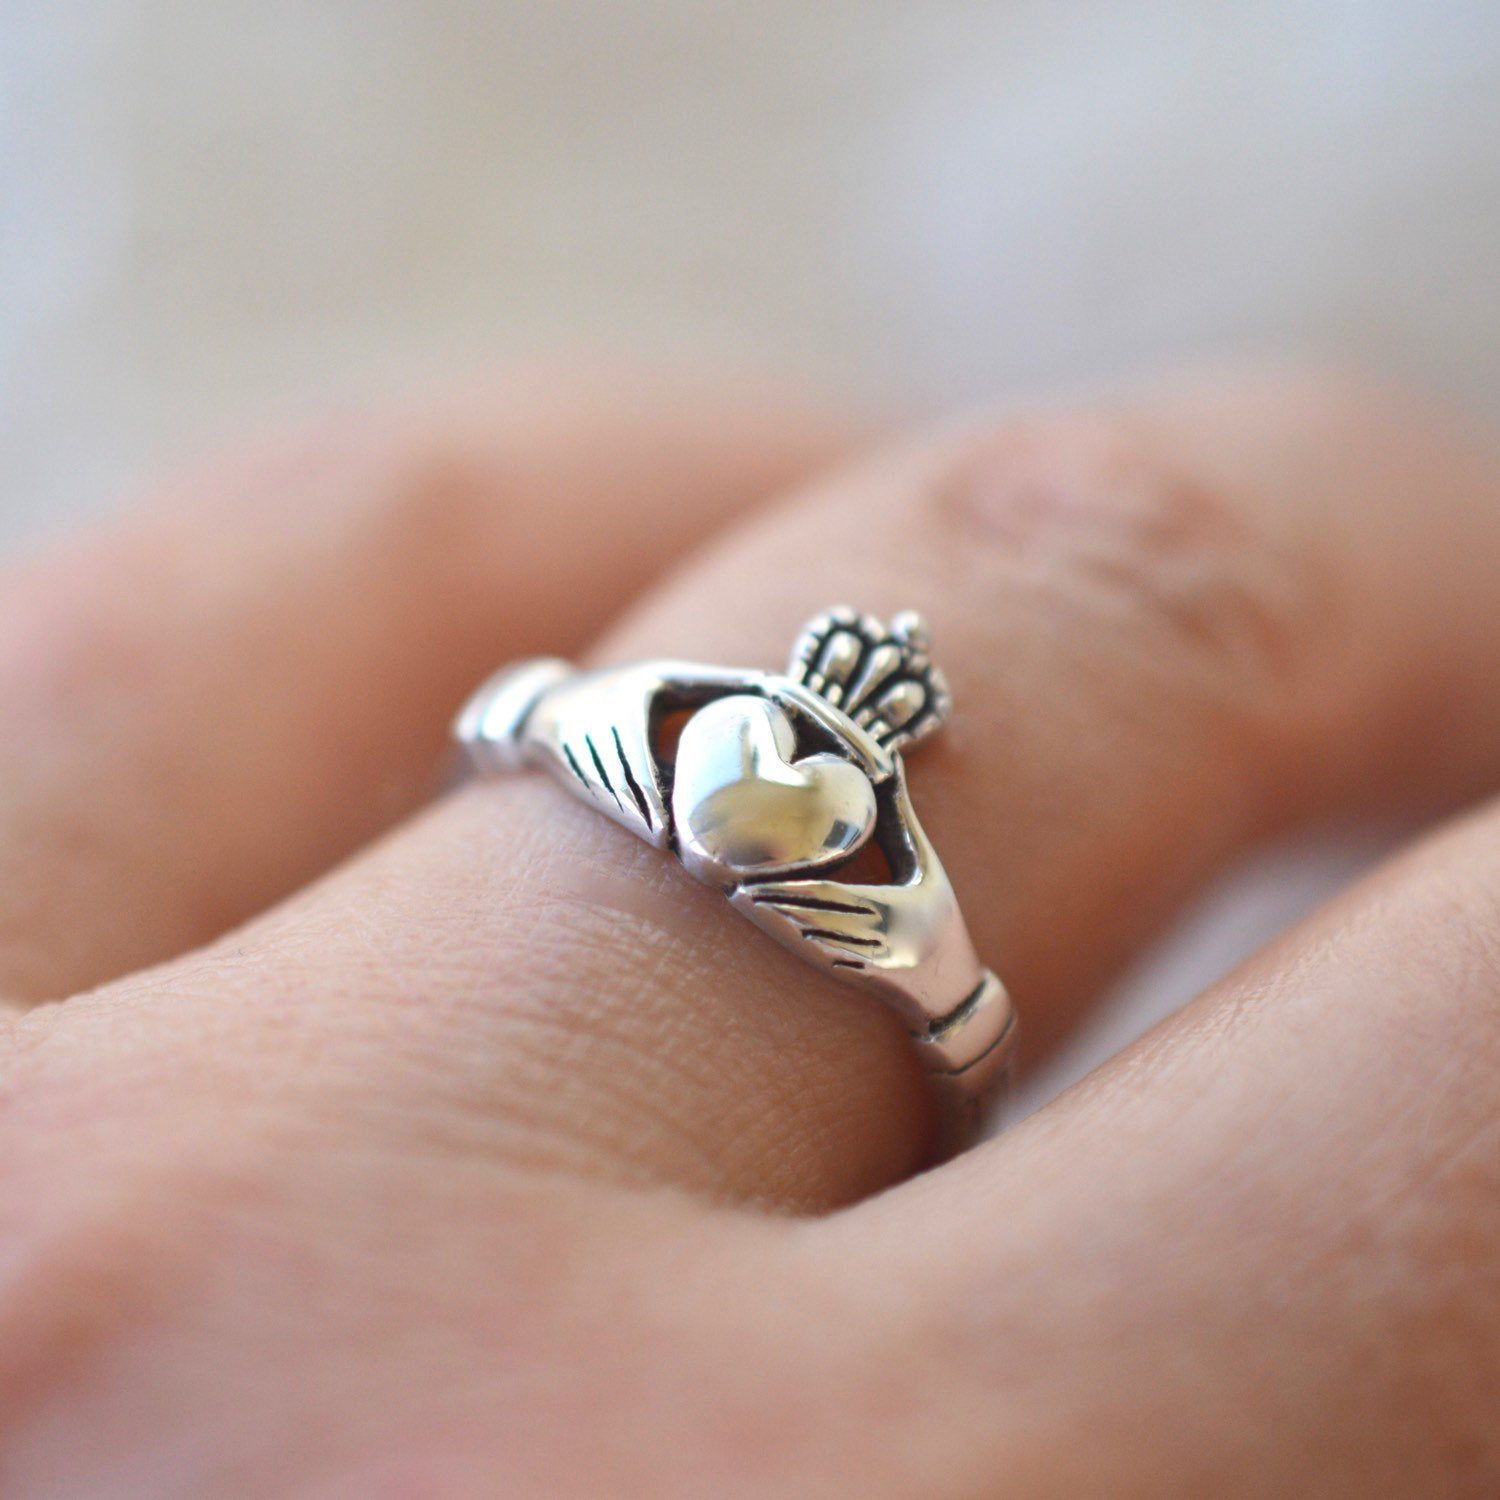 So loved and so iconic. The Irish Claddagh ring represents